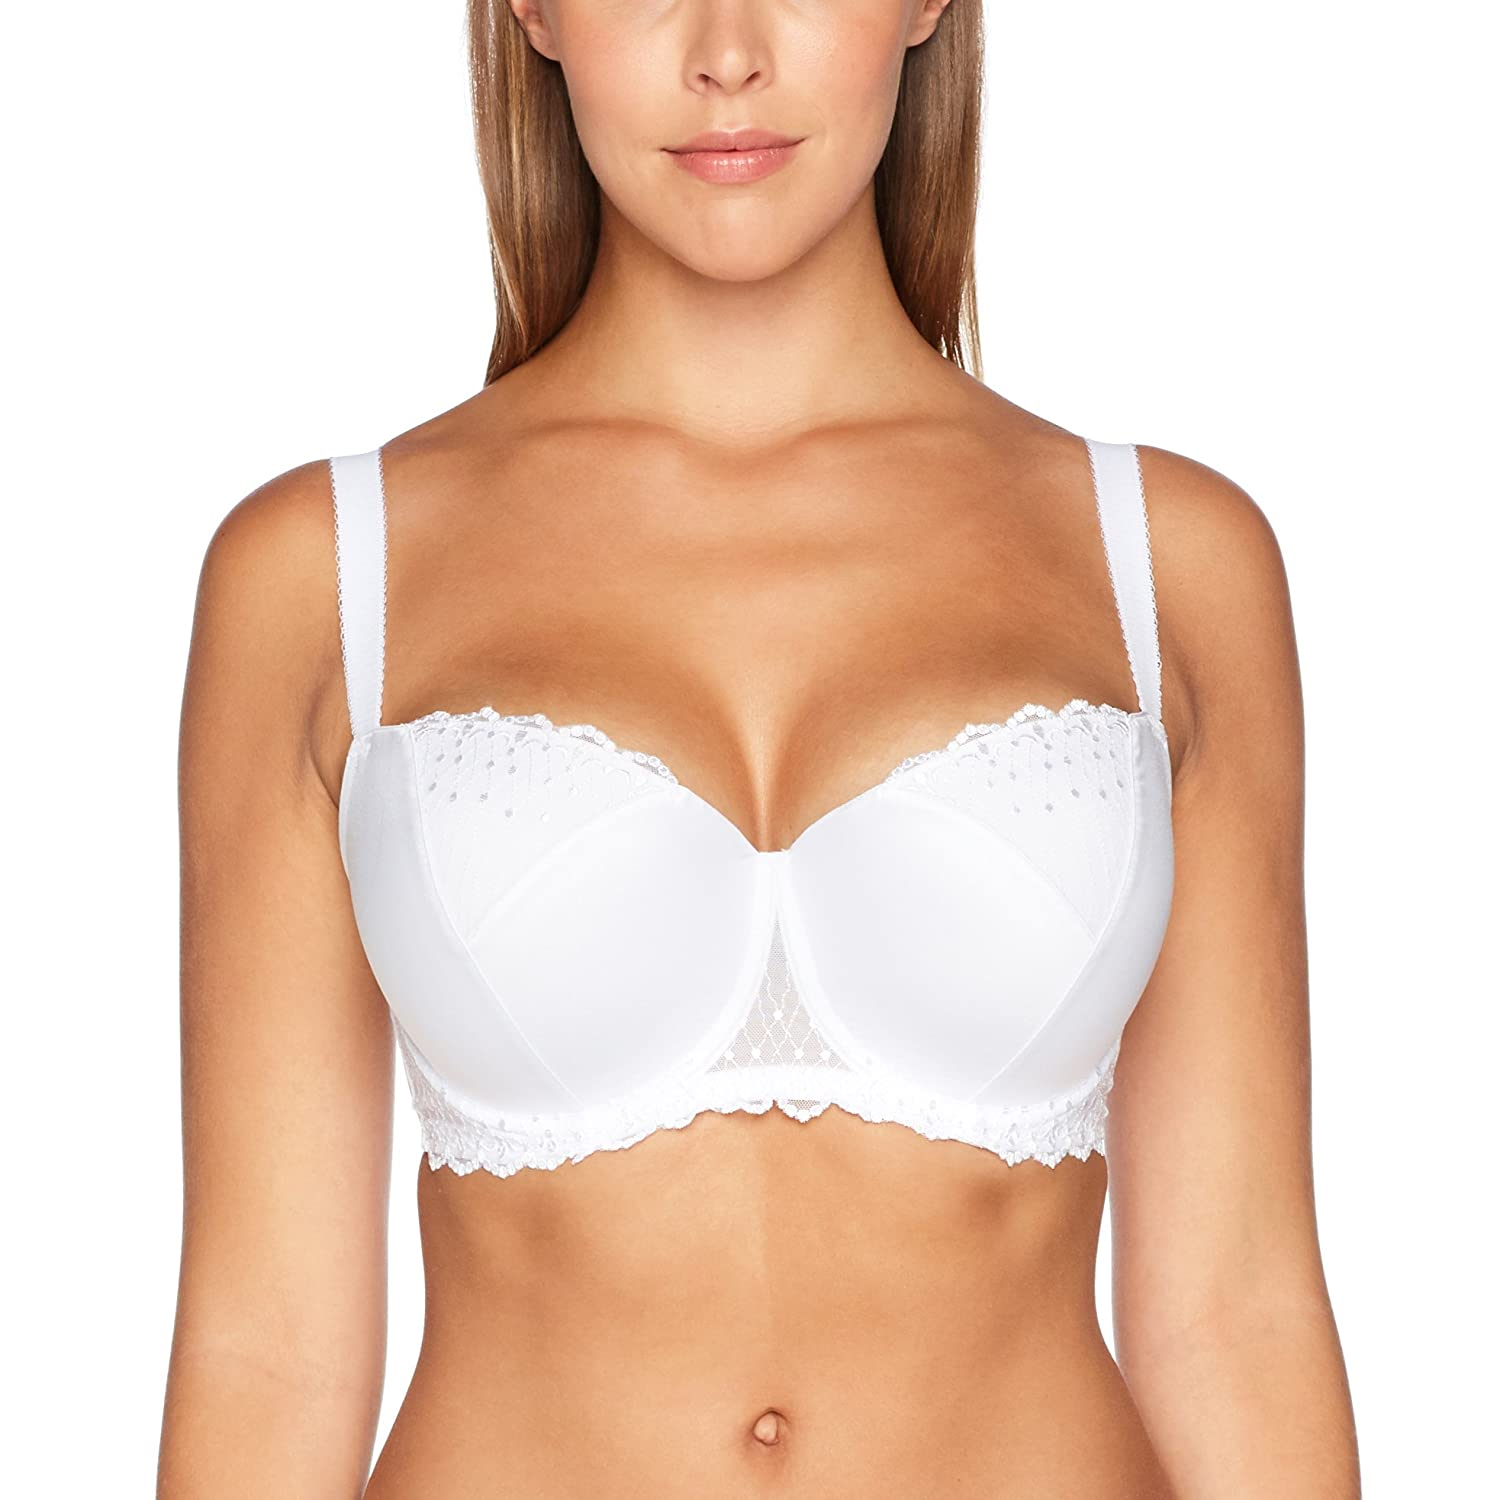 Wonderbra Women's Modern Chic Everyday Bra W05G2